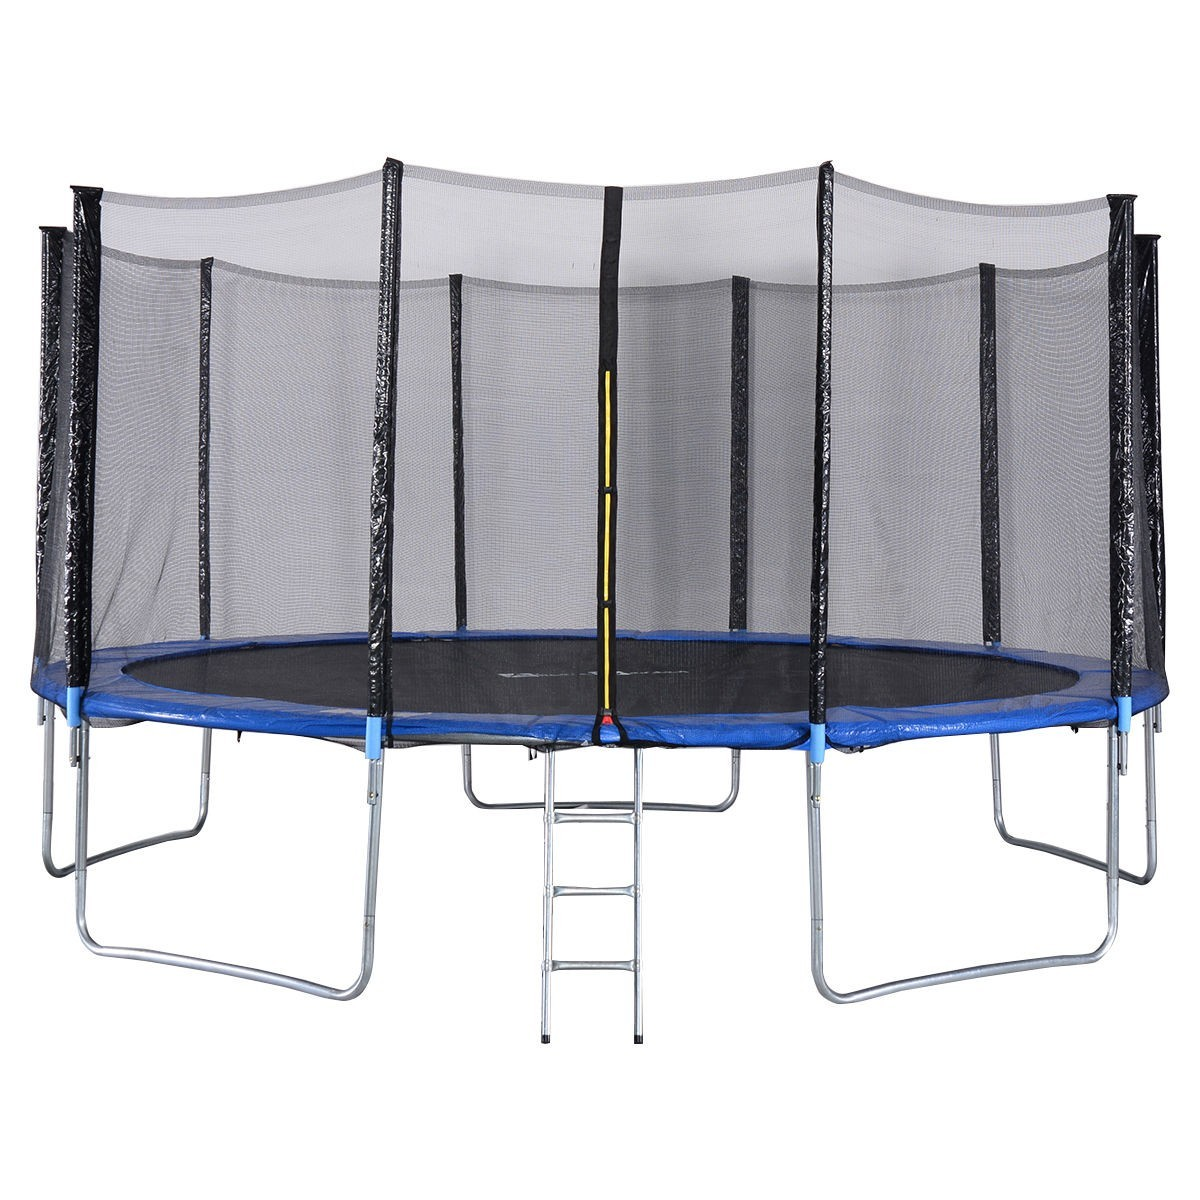 15 ft Trampoline Combo w/ Safety Enclosure Net, Spring Pad & Ladder